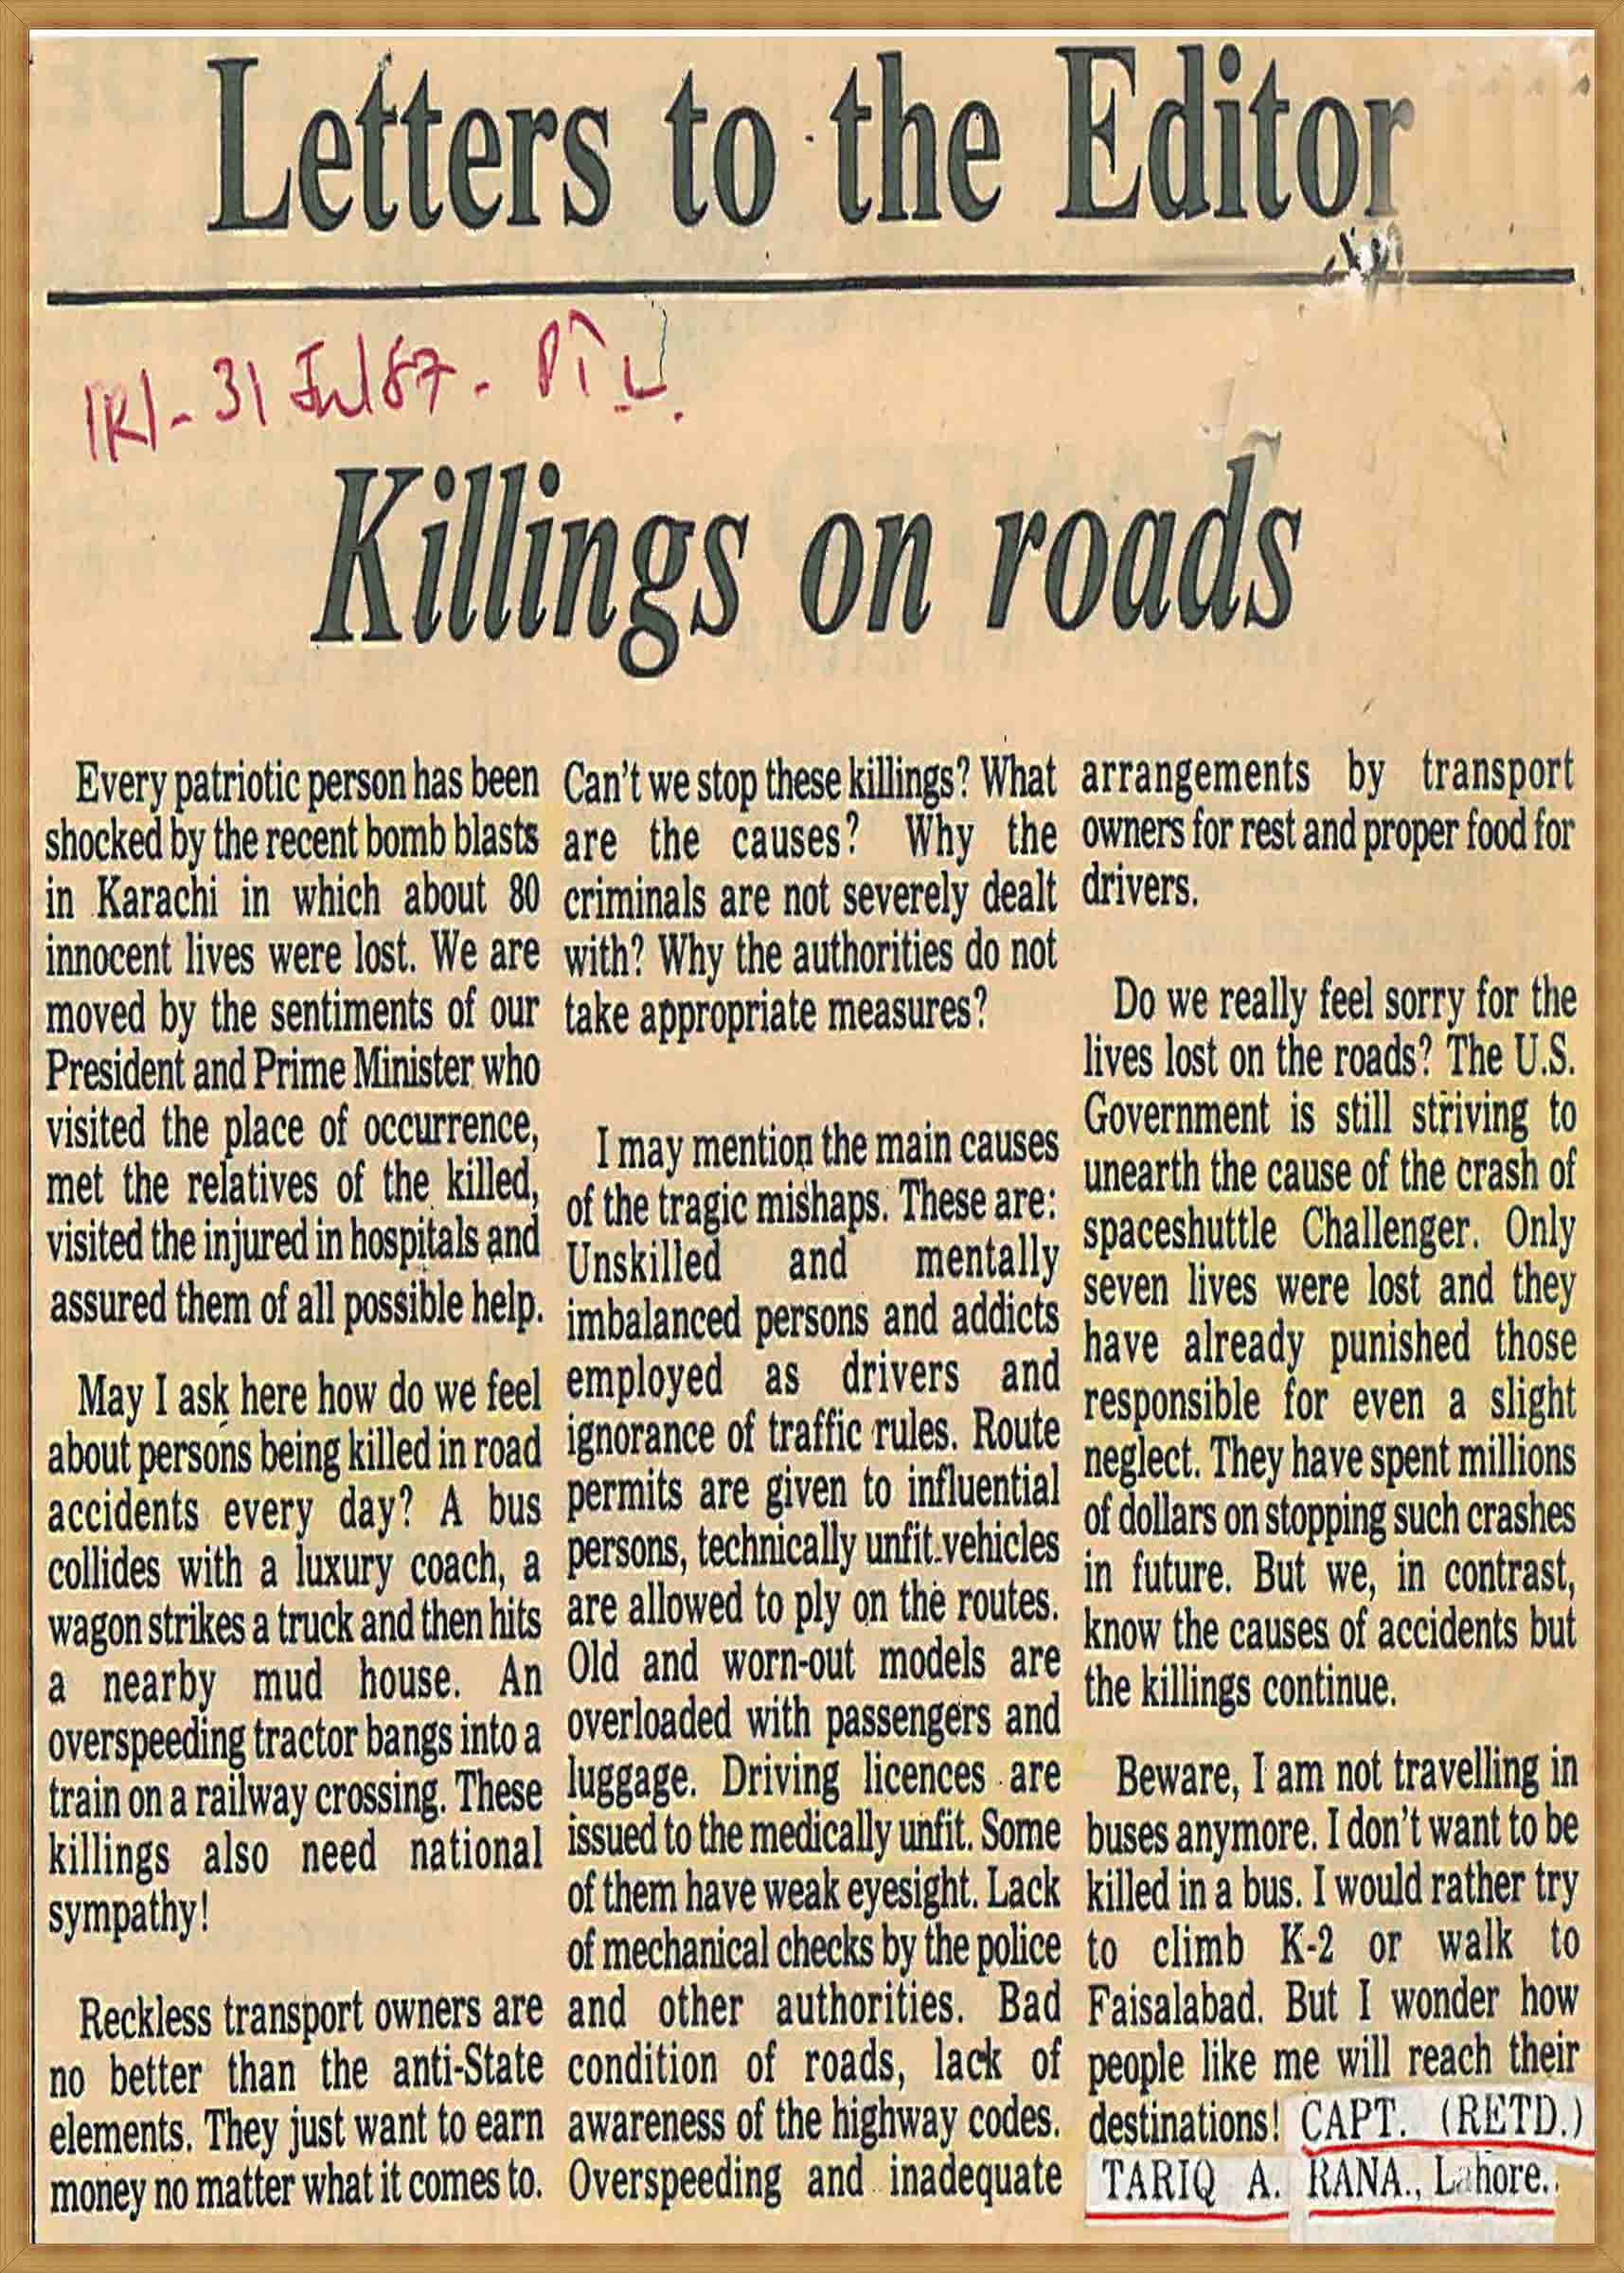 Letter to the Editor-Killings on roads (31-07-1987)